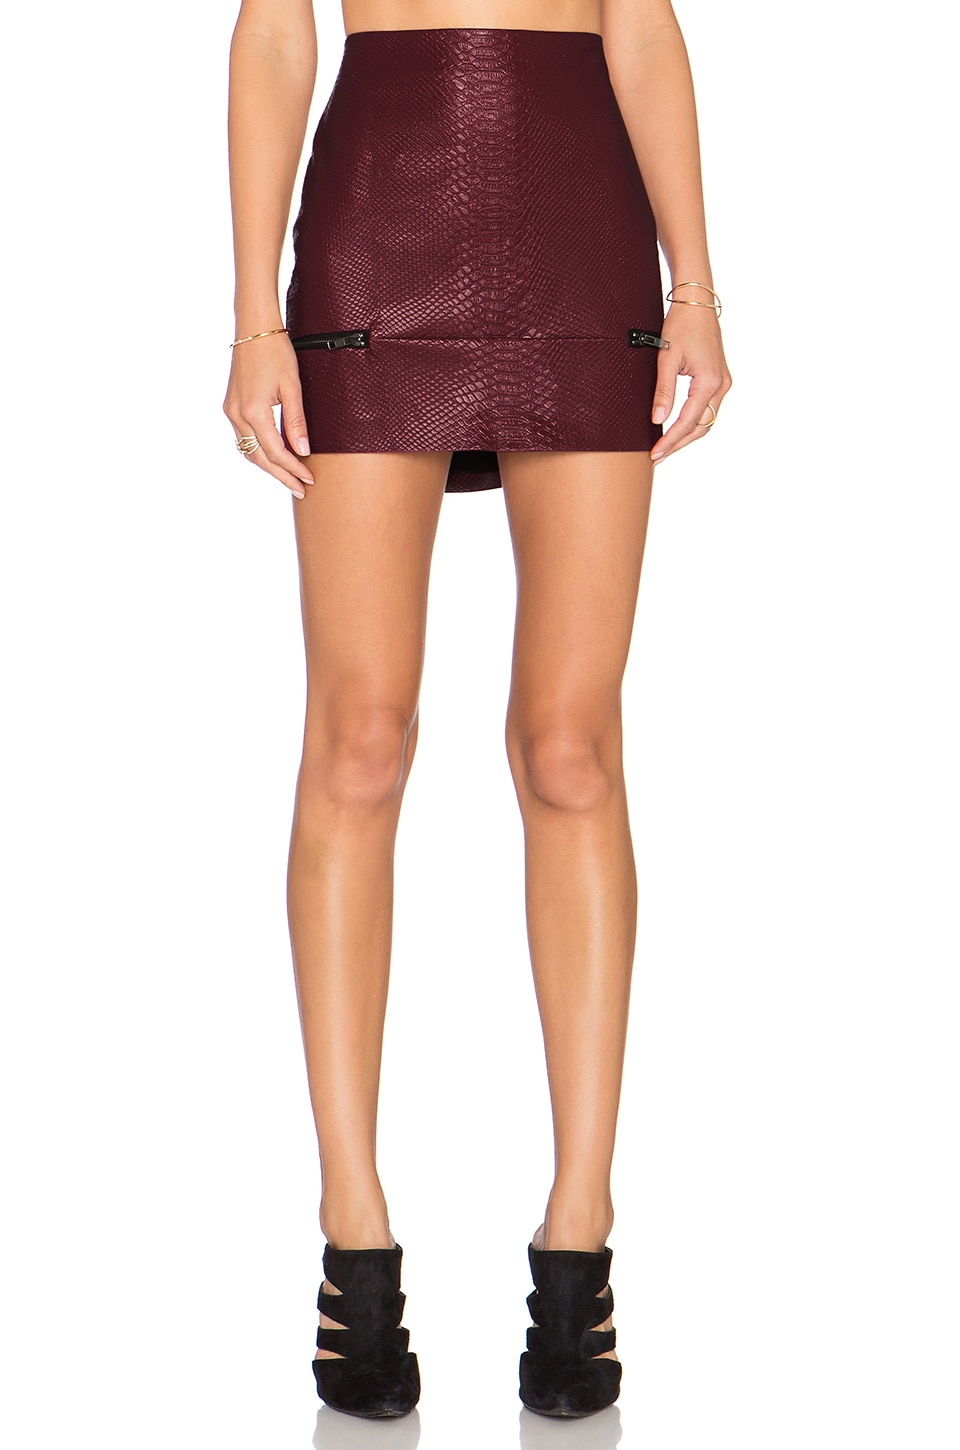 Lovers + Friends x REVOLVE Good To Be Bad Mini Skirt in Bordaeux